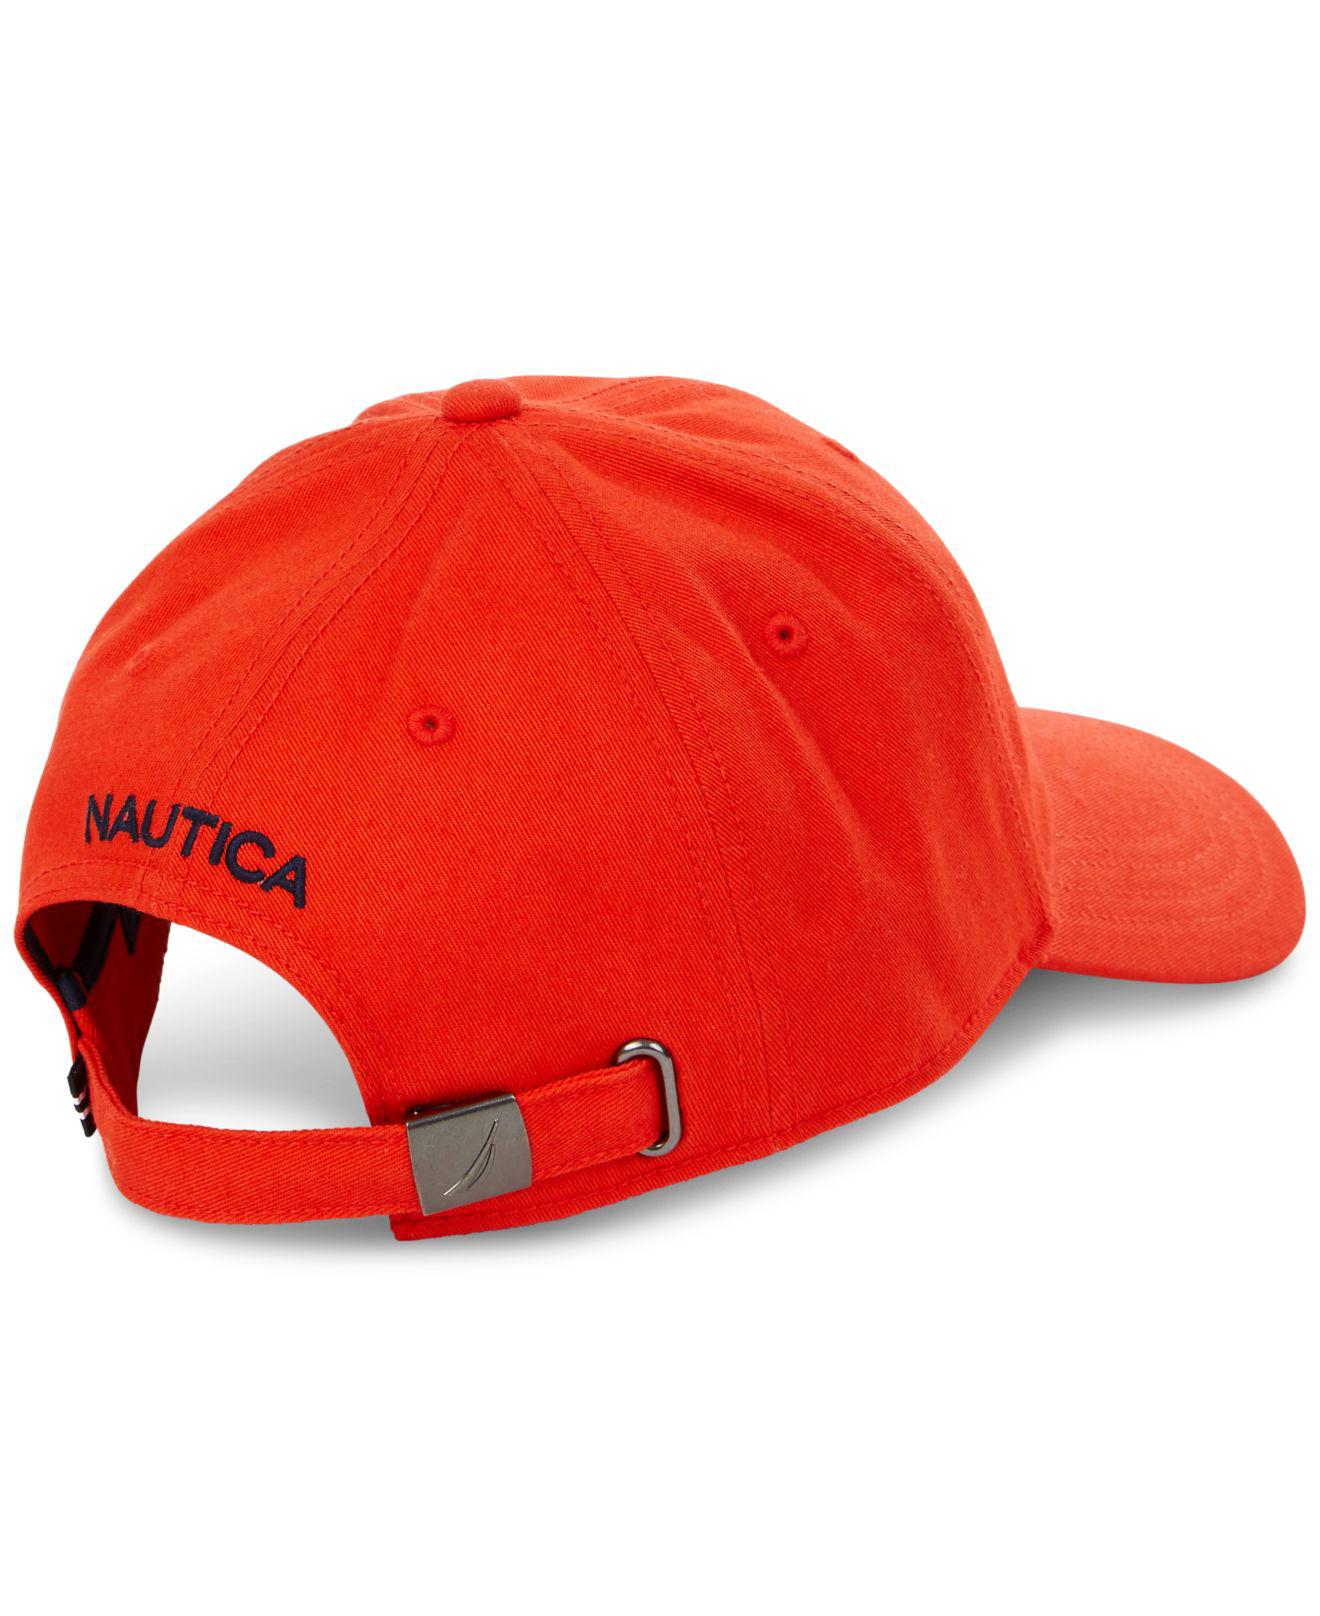 5a29c2a193c Lyst - Nautica J Class Embroidered Hat in Red for Men